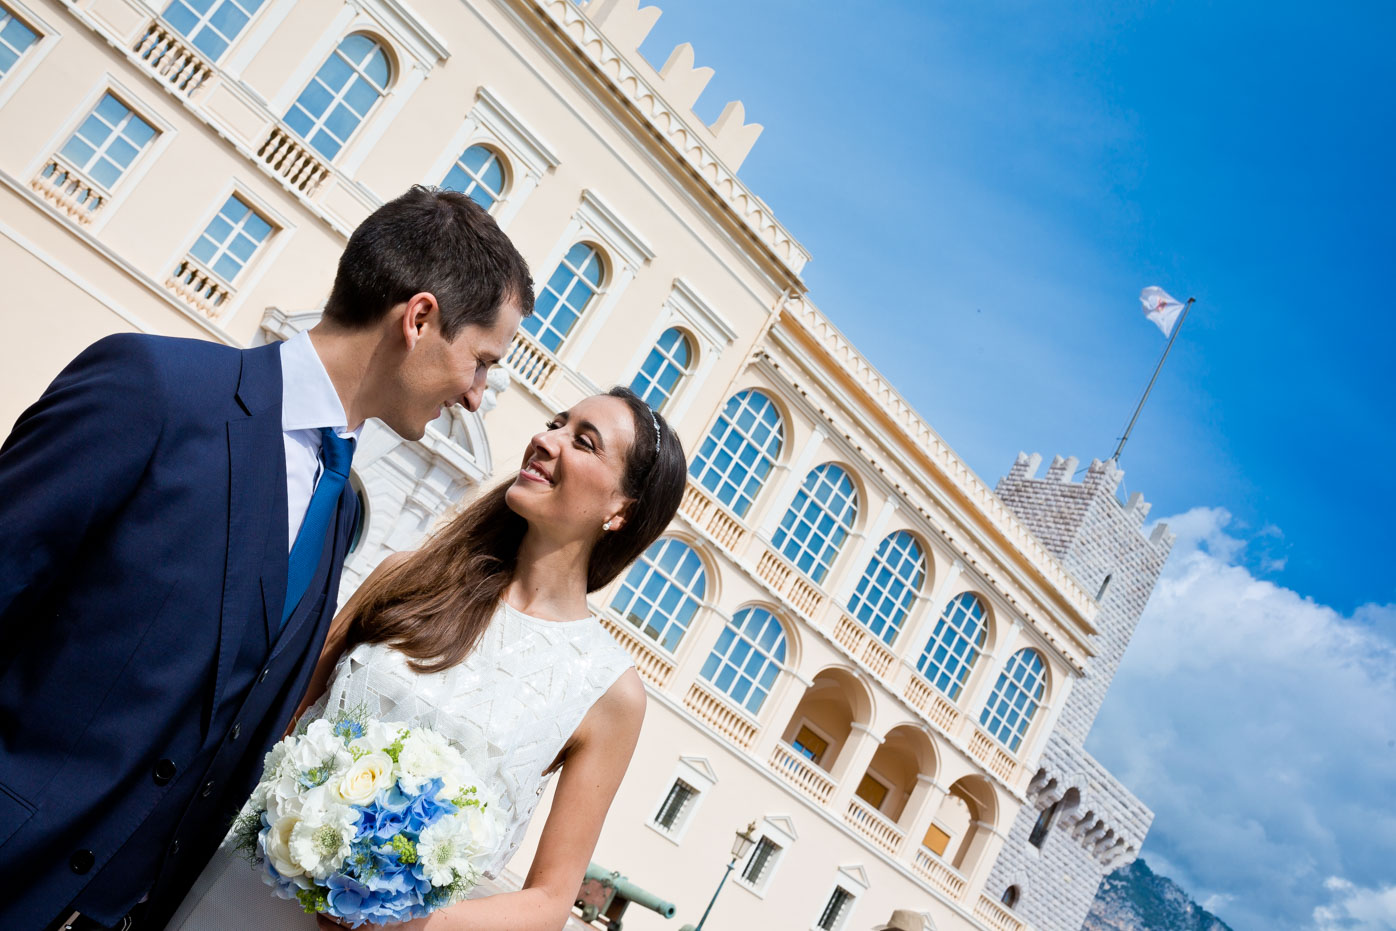 Photographe_Monaco_Monte_Carlo_Mariage_Wedding_20